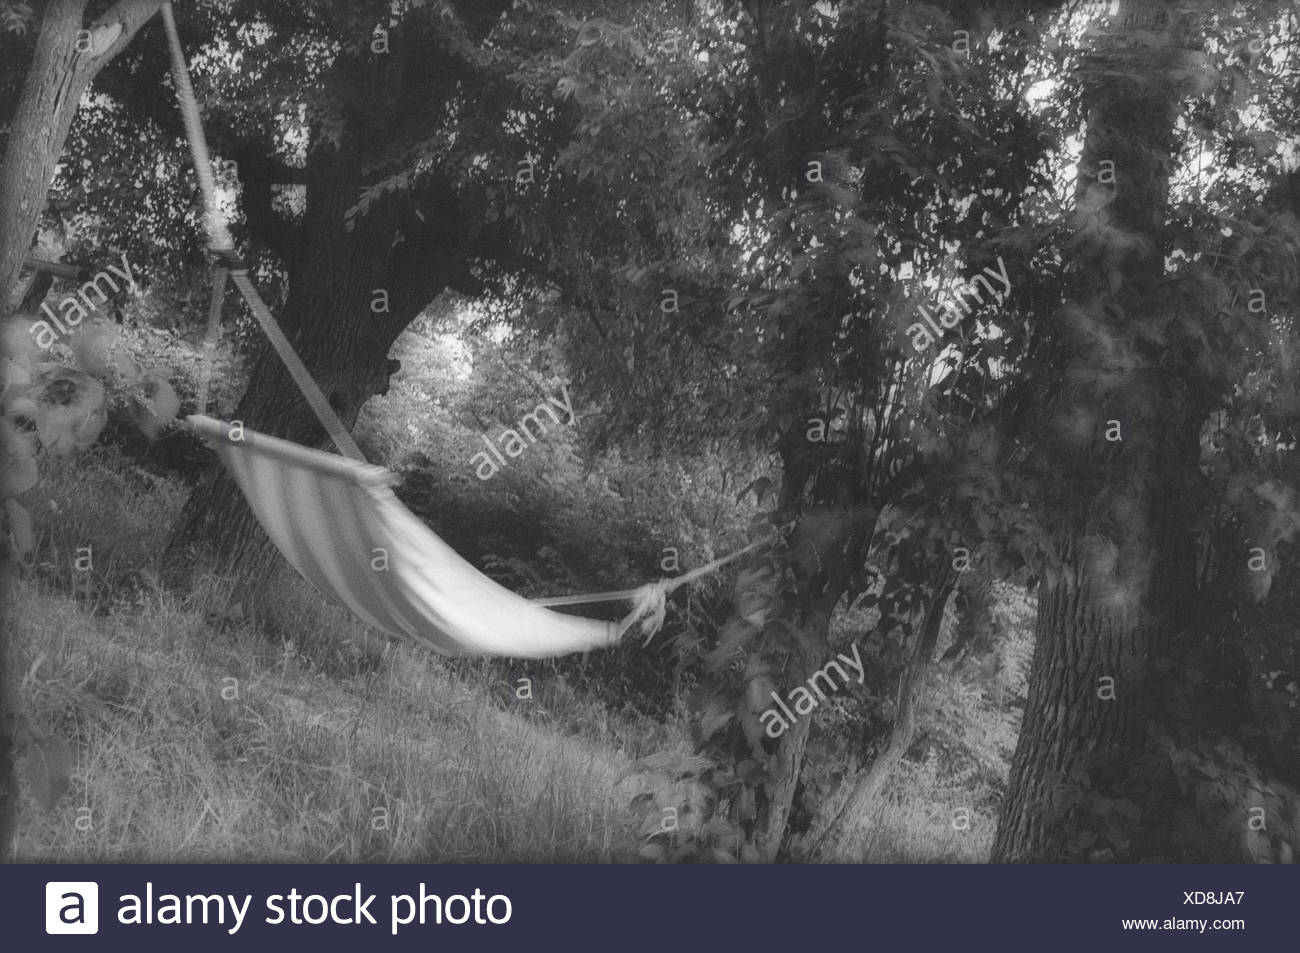 Blurred image of hammock in a garden. - Stock Image